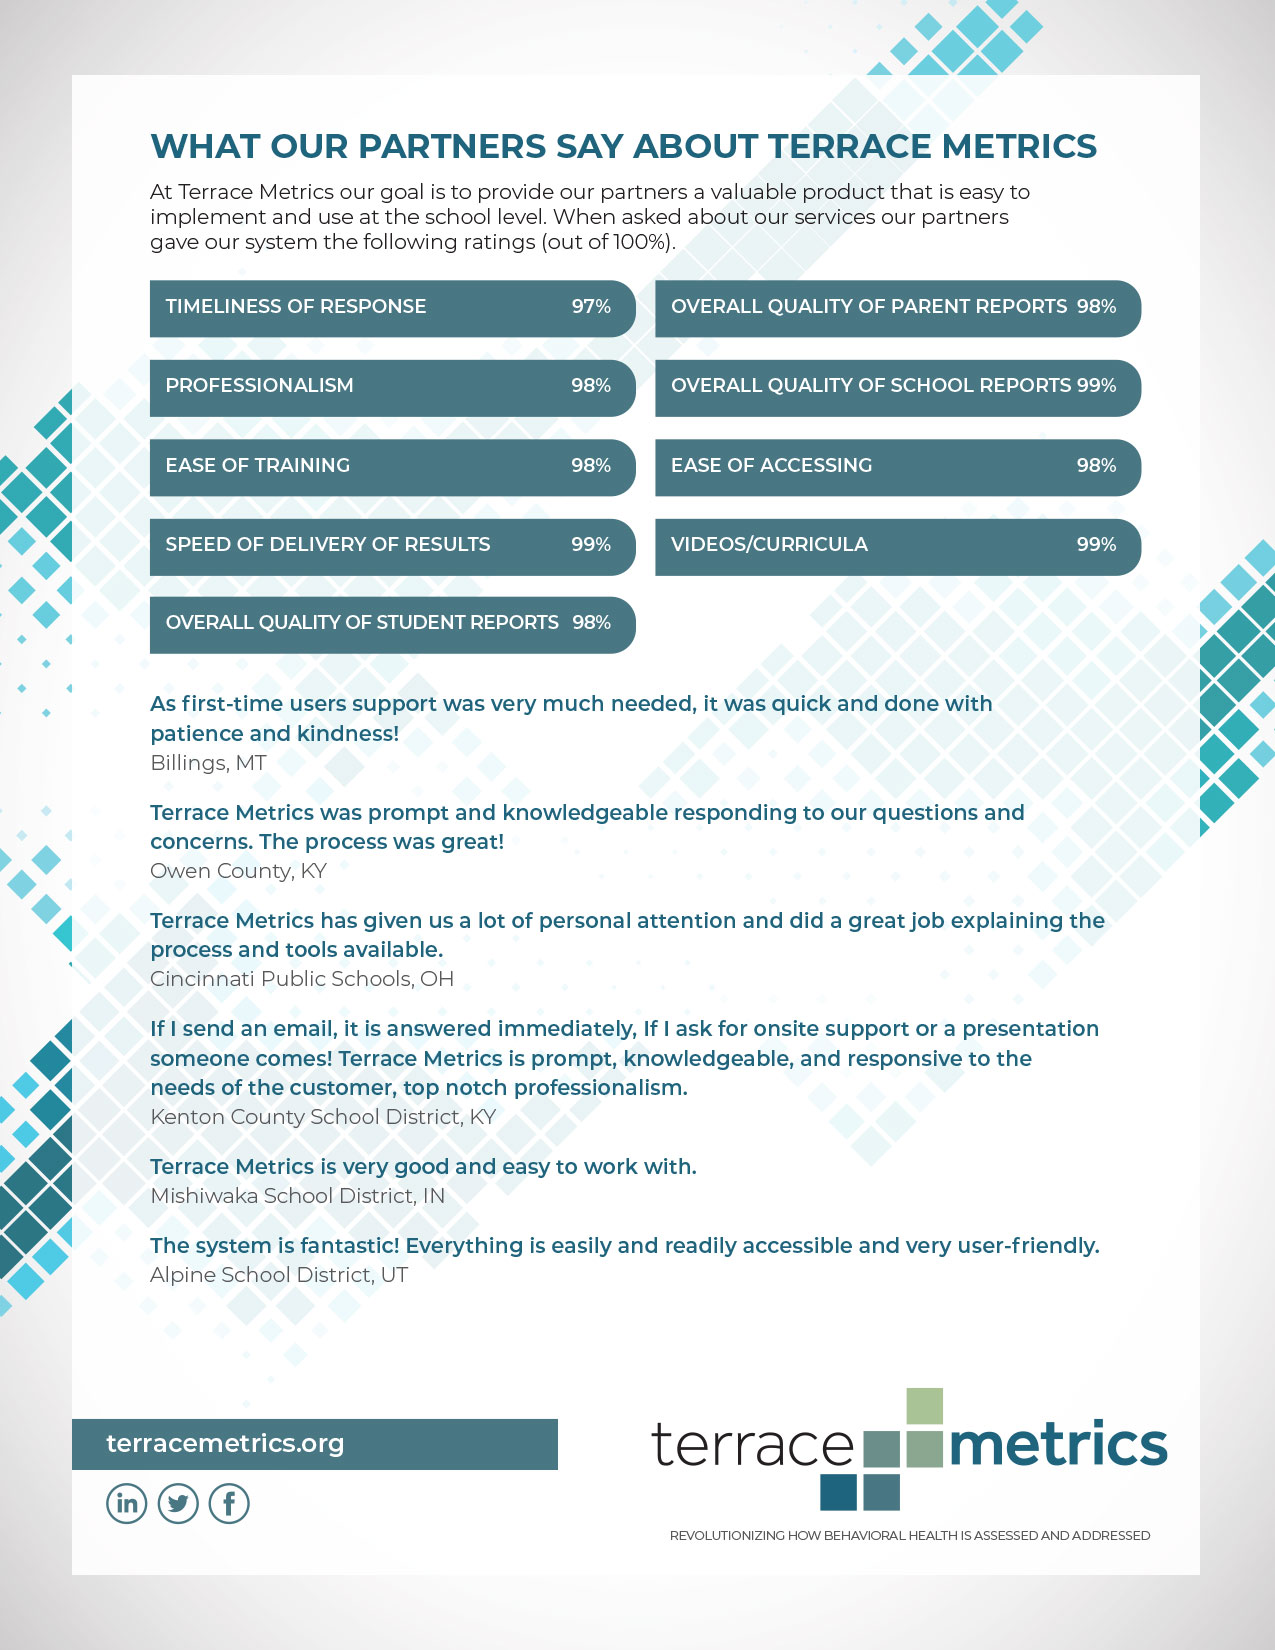 What Our Partners Say About Terrace Metrics